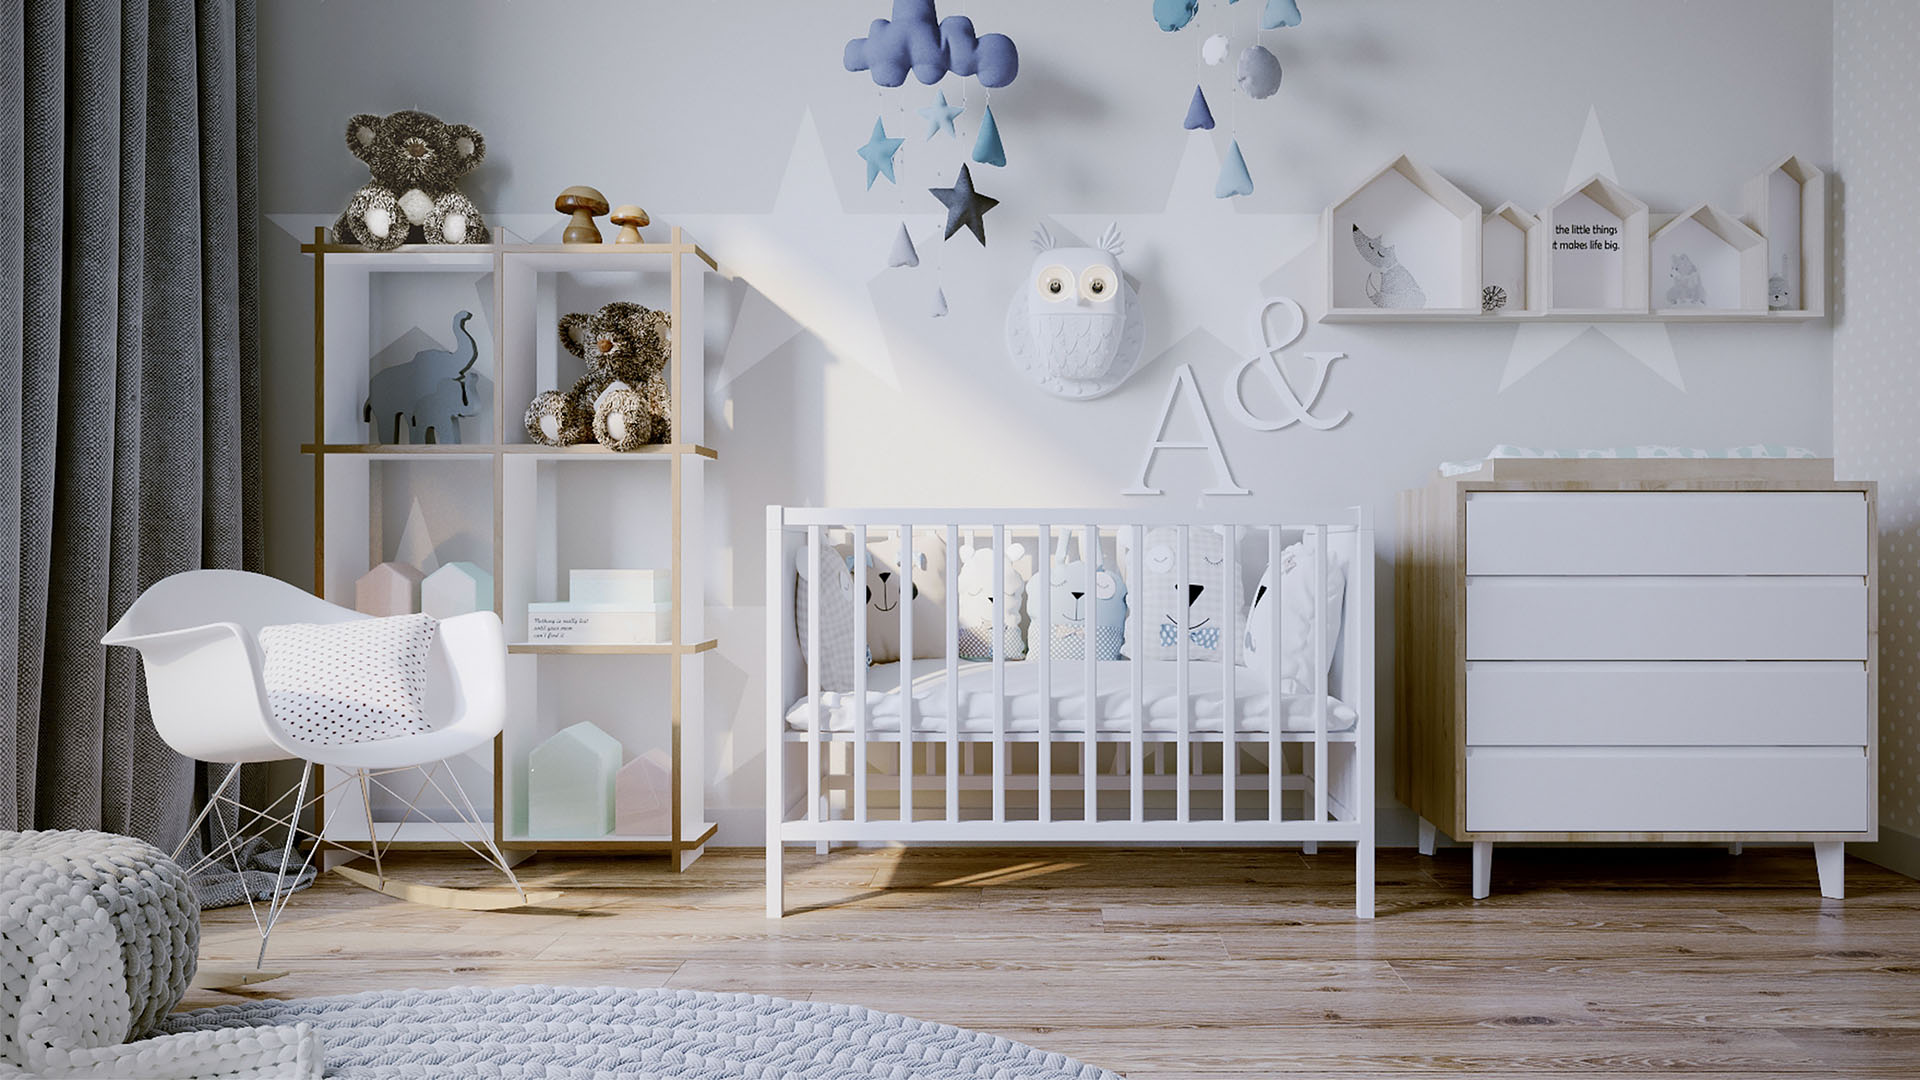 children's room design interior